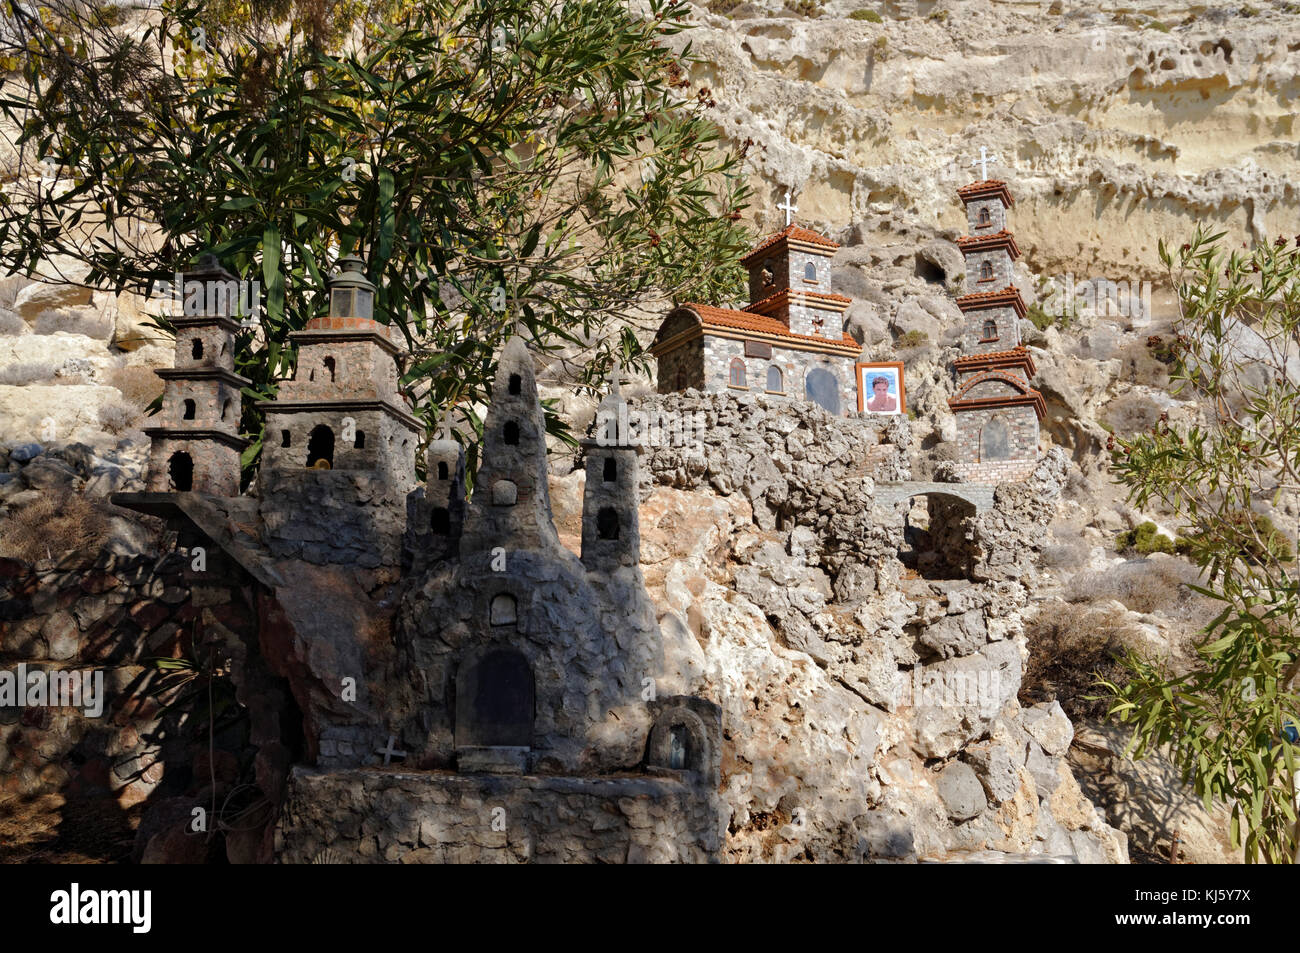 Memorial model of churches and religeous buildings in great detail, made from pebbles found on beach, near Archangelos, Stock Photo